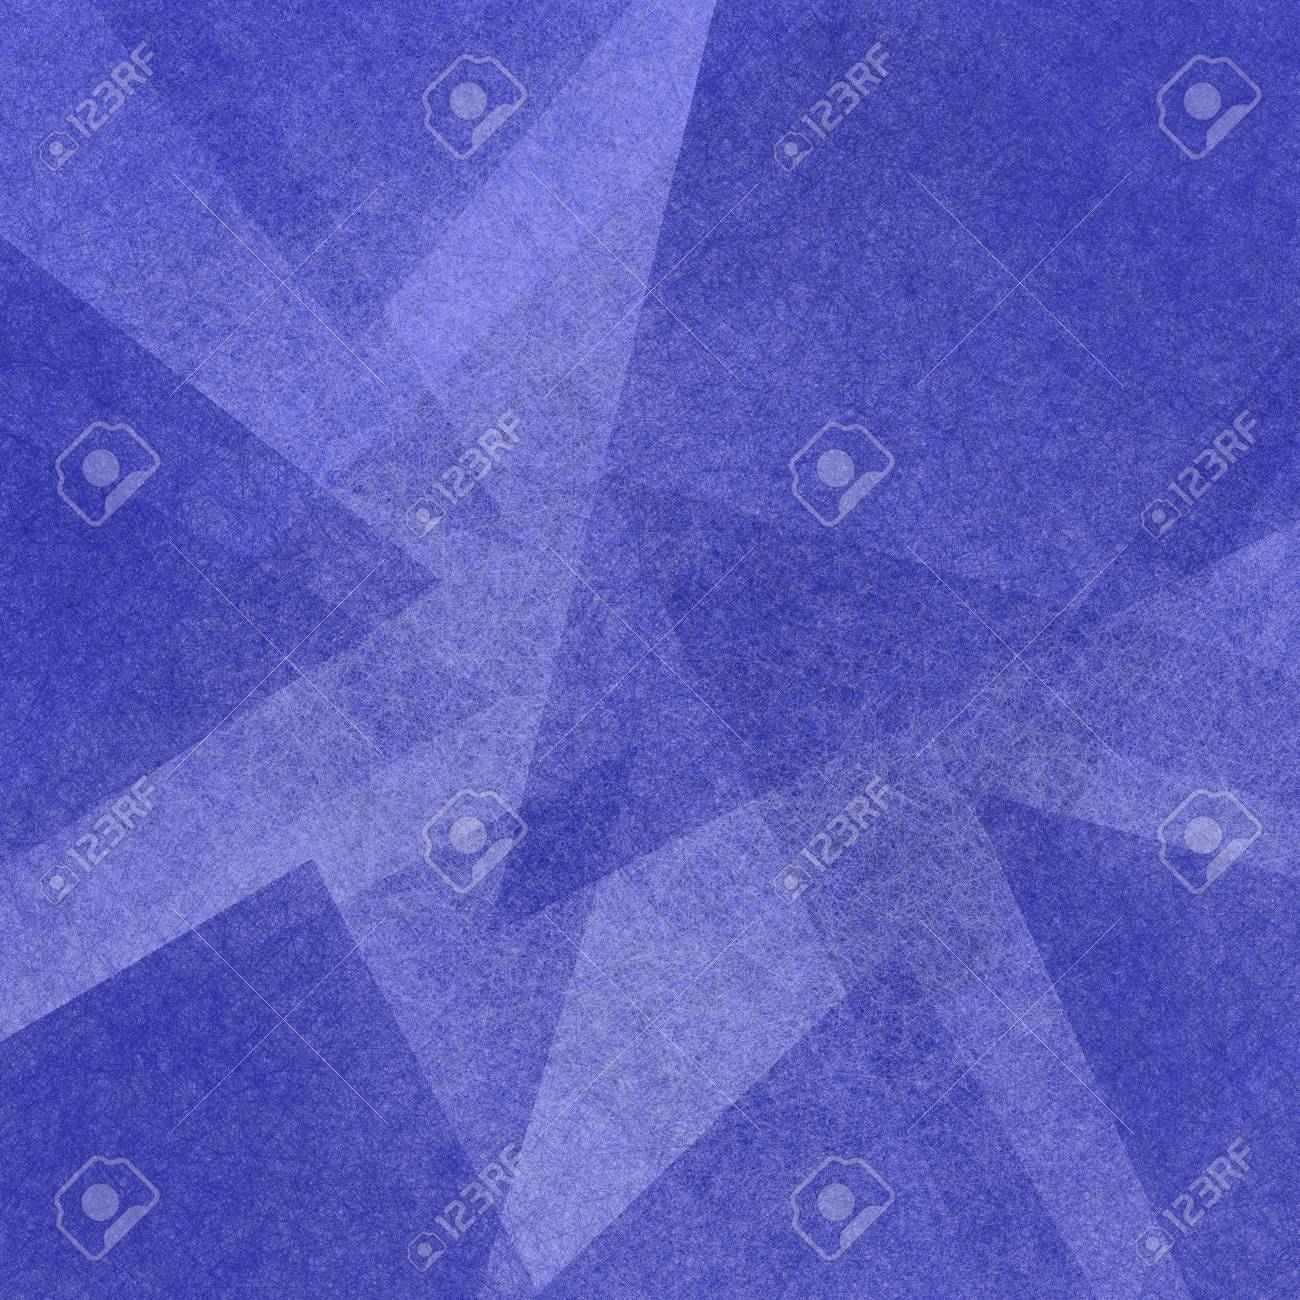 blue abstract background with triangle layers in modern geometric pattern - 126549461